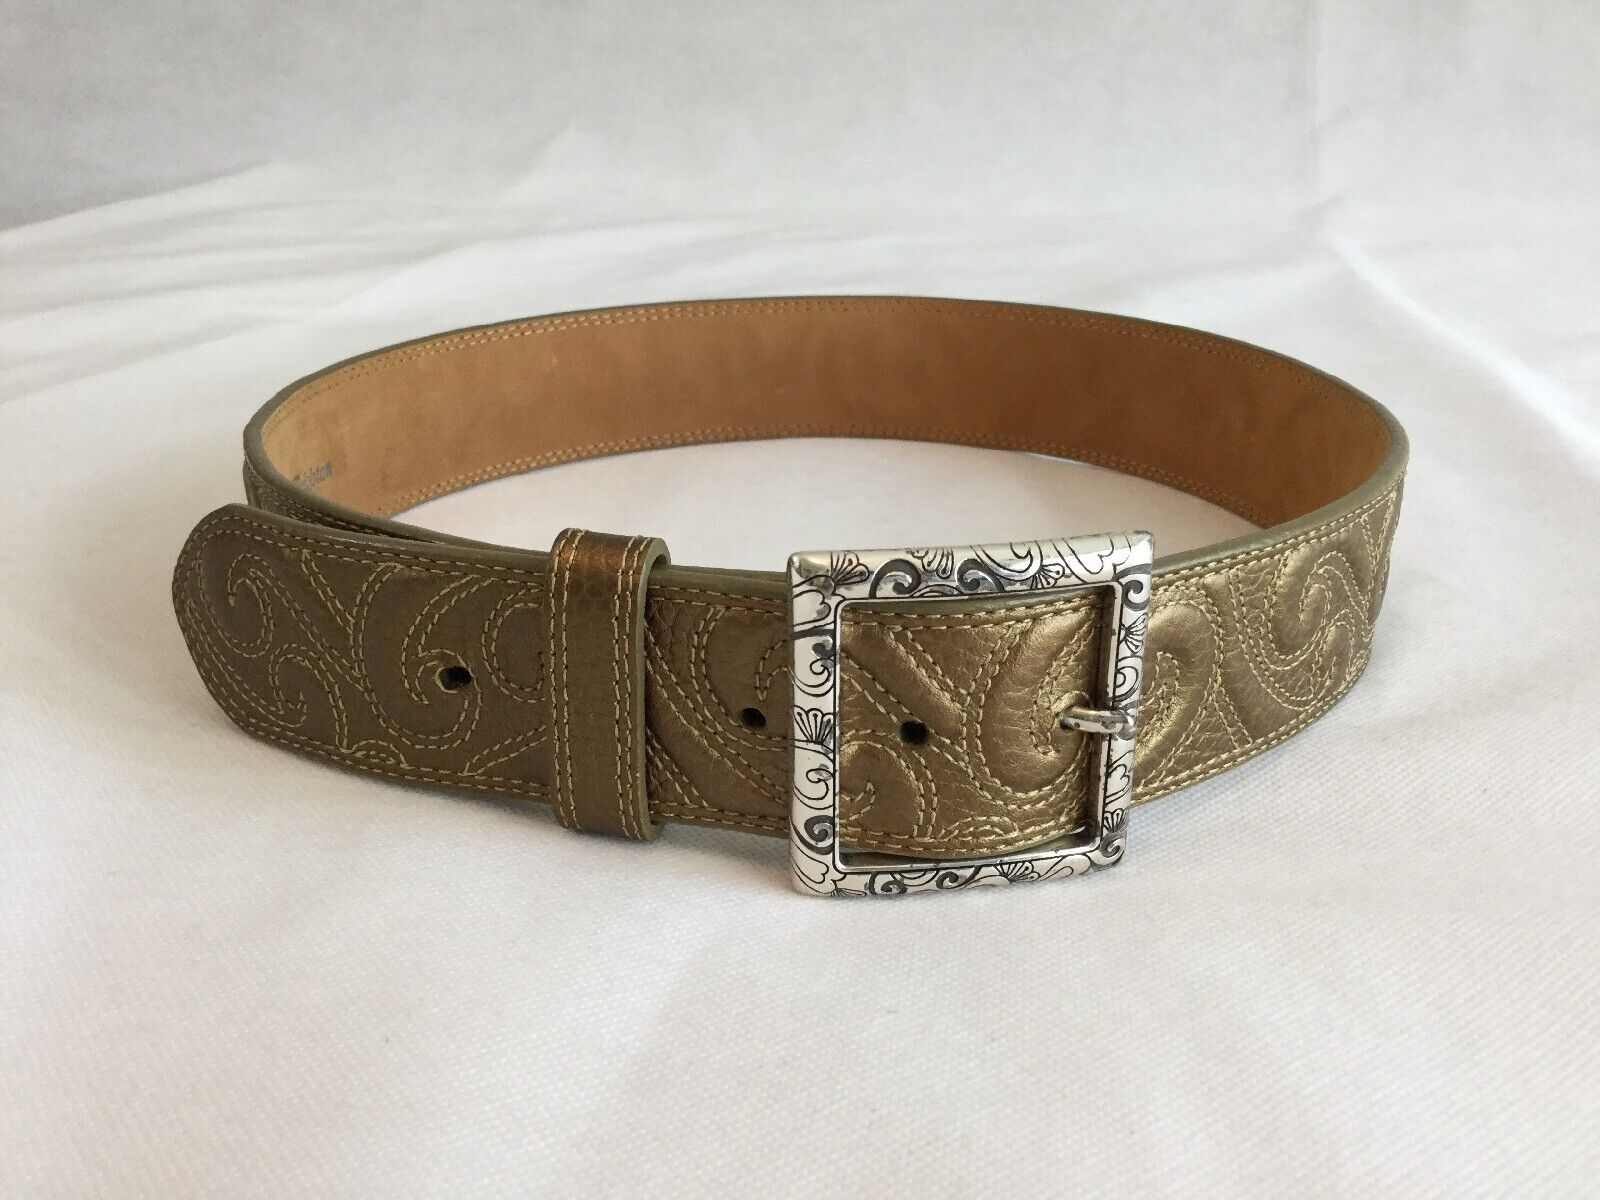 Brighton Leather Belt Size 32 Gold Bronze Silver Buckle Paisley Women's